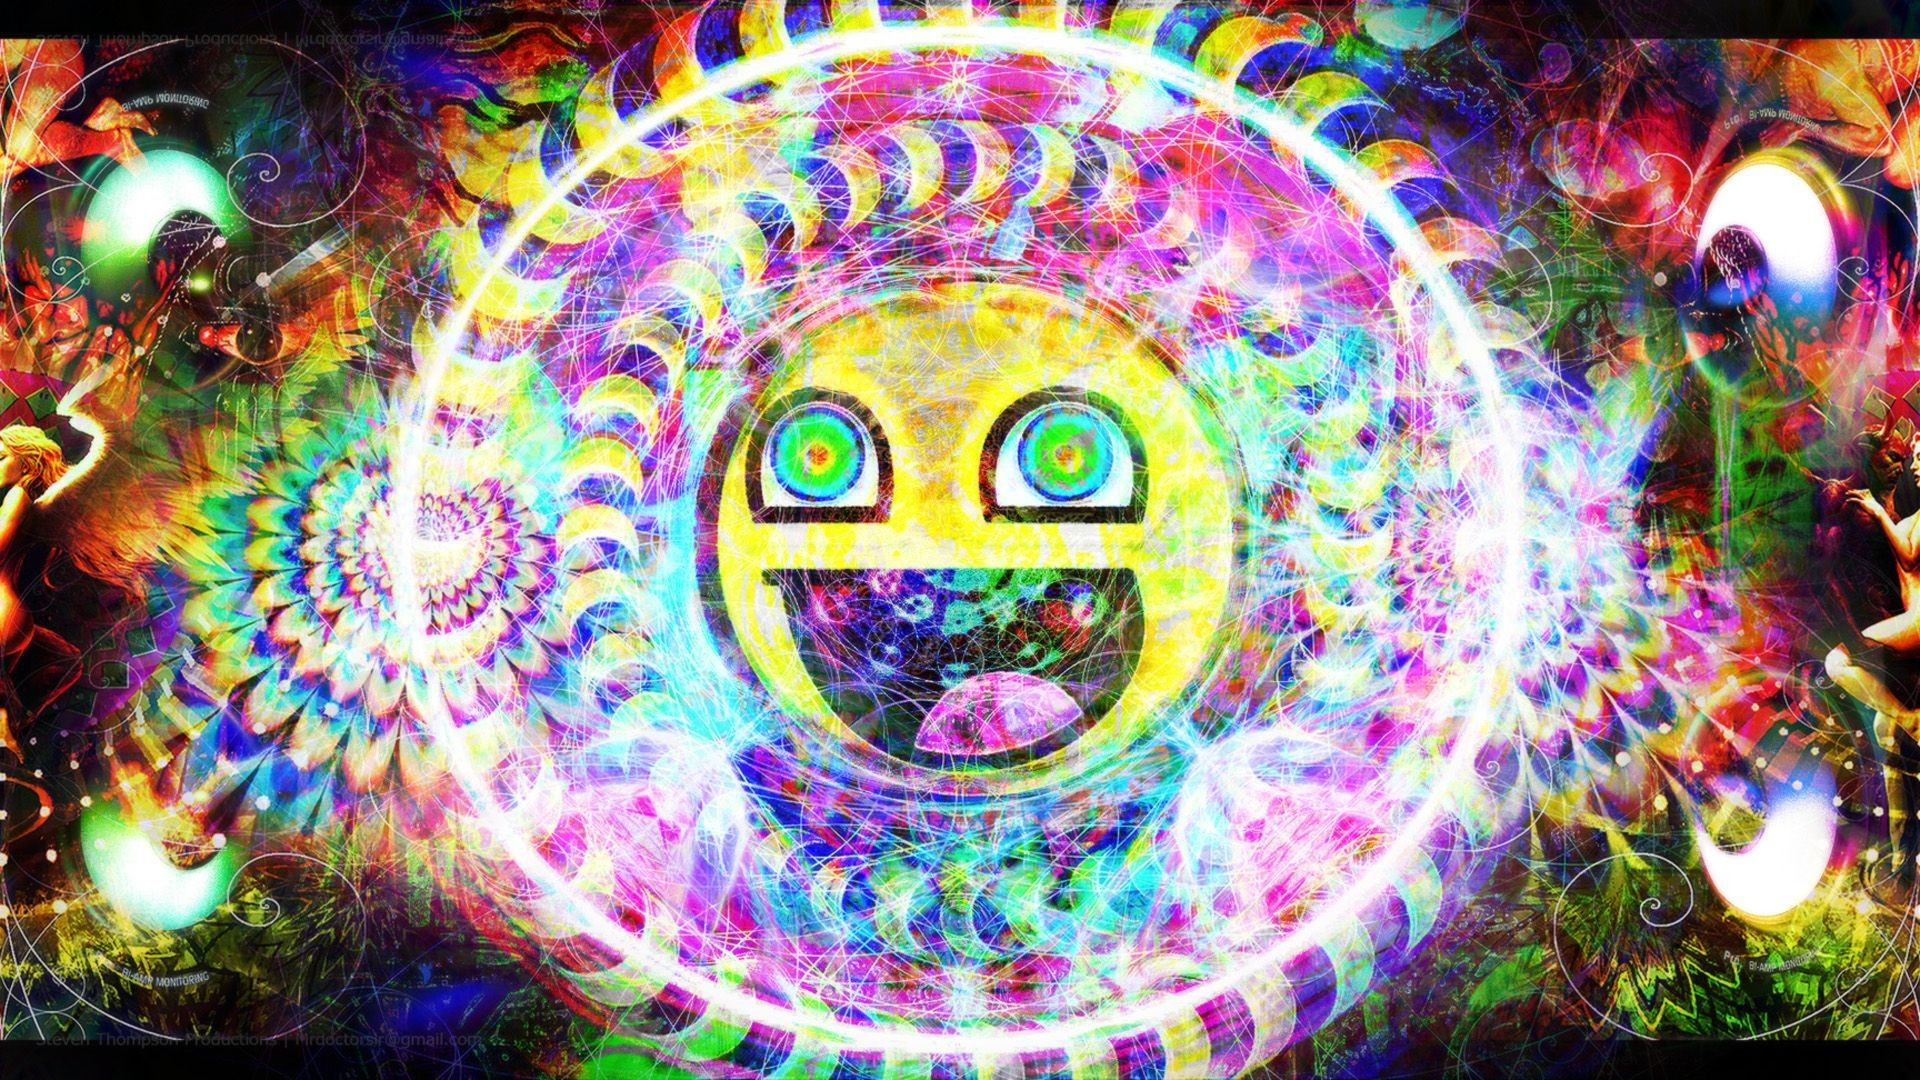 Trippy Psychedelic Awesome Smiley HD Wallpaper | | ID:49066